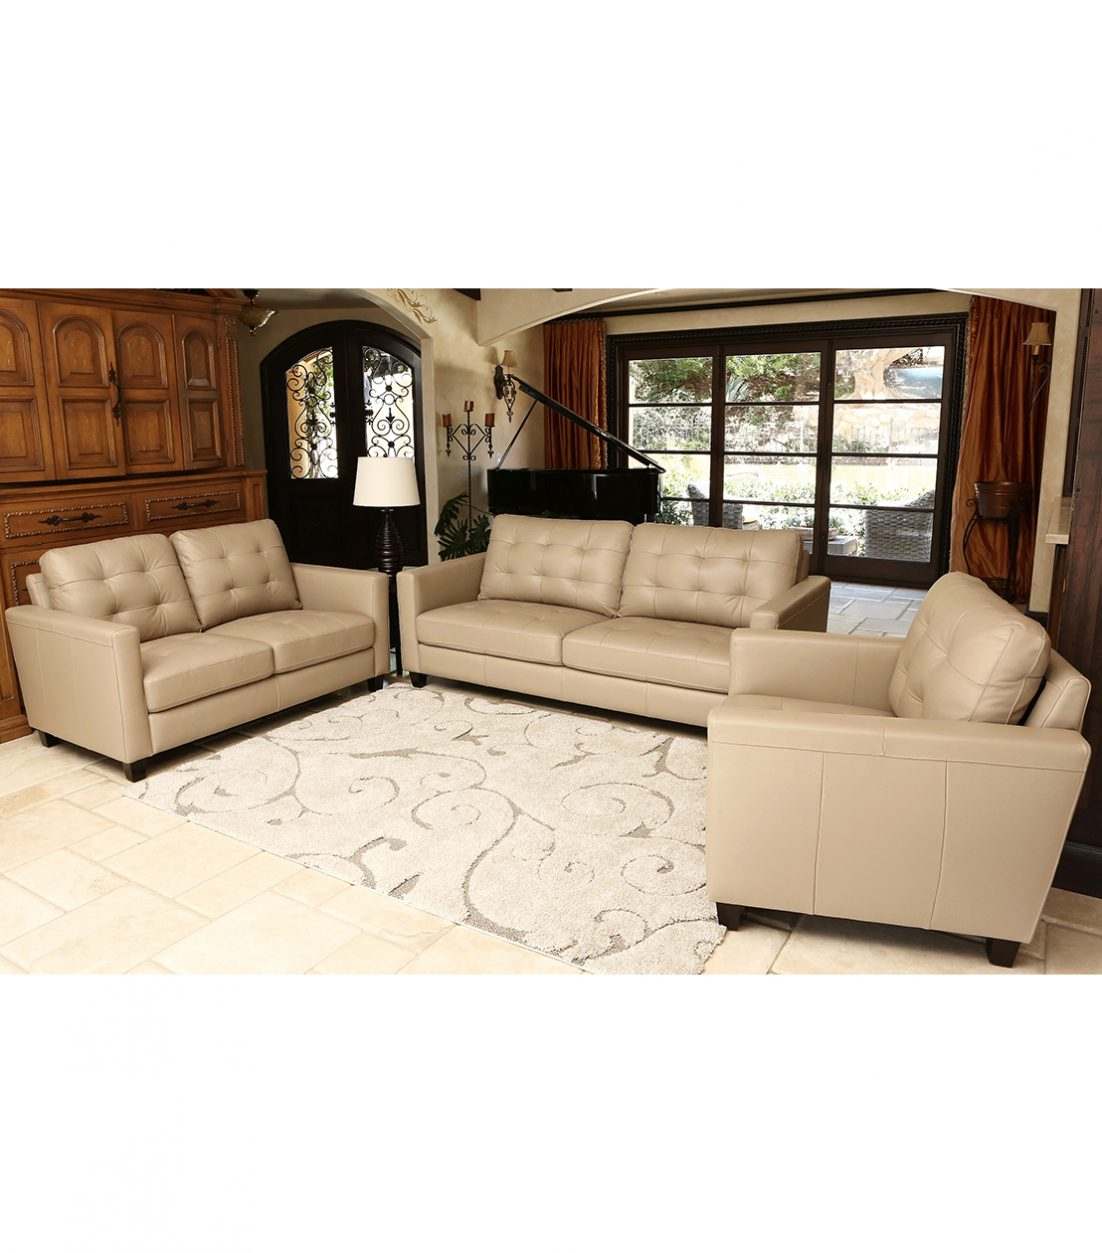 3 Piece Living Room Set Casta Products Pinterest Sofa And Small with Mcdade Ash Sofa Chairs